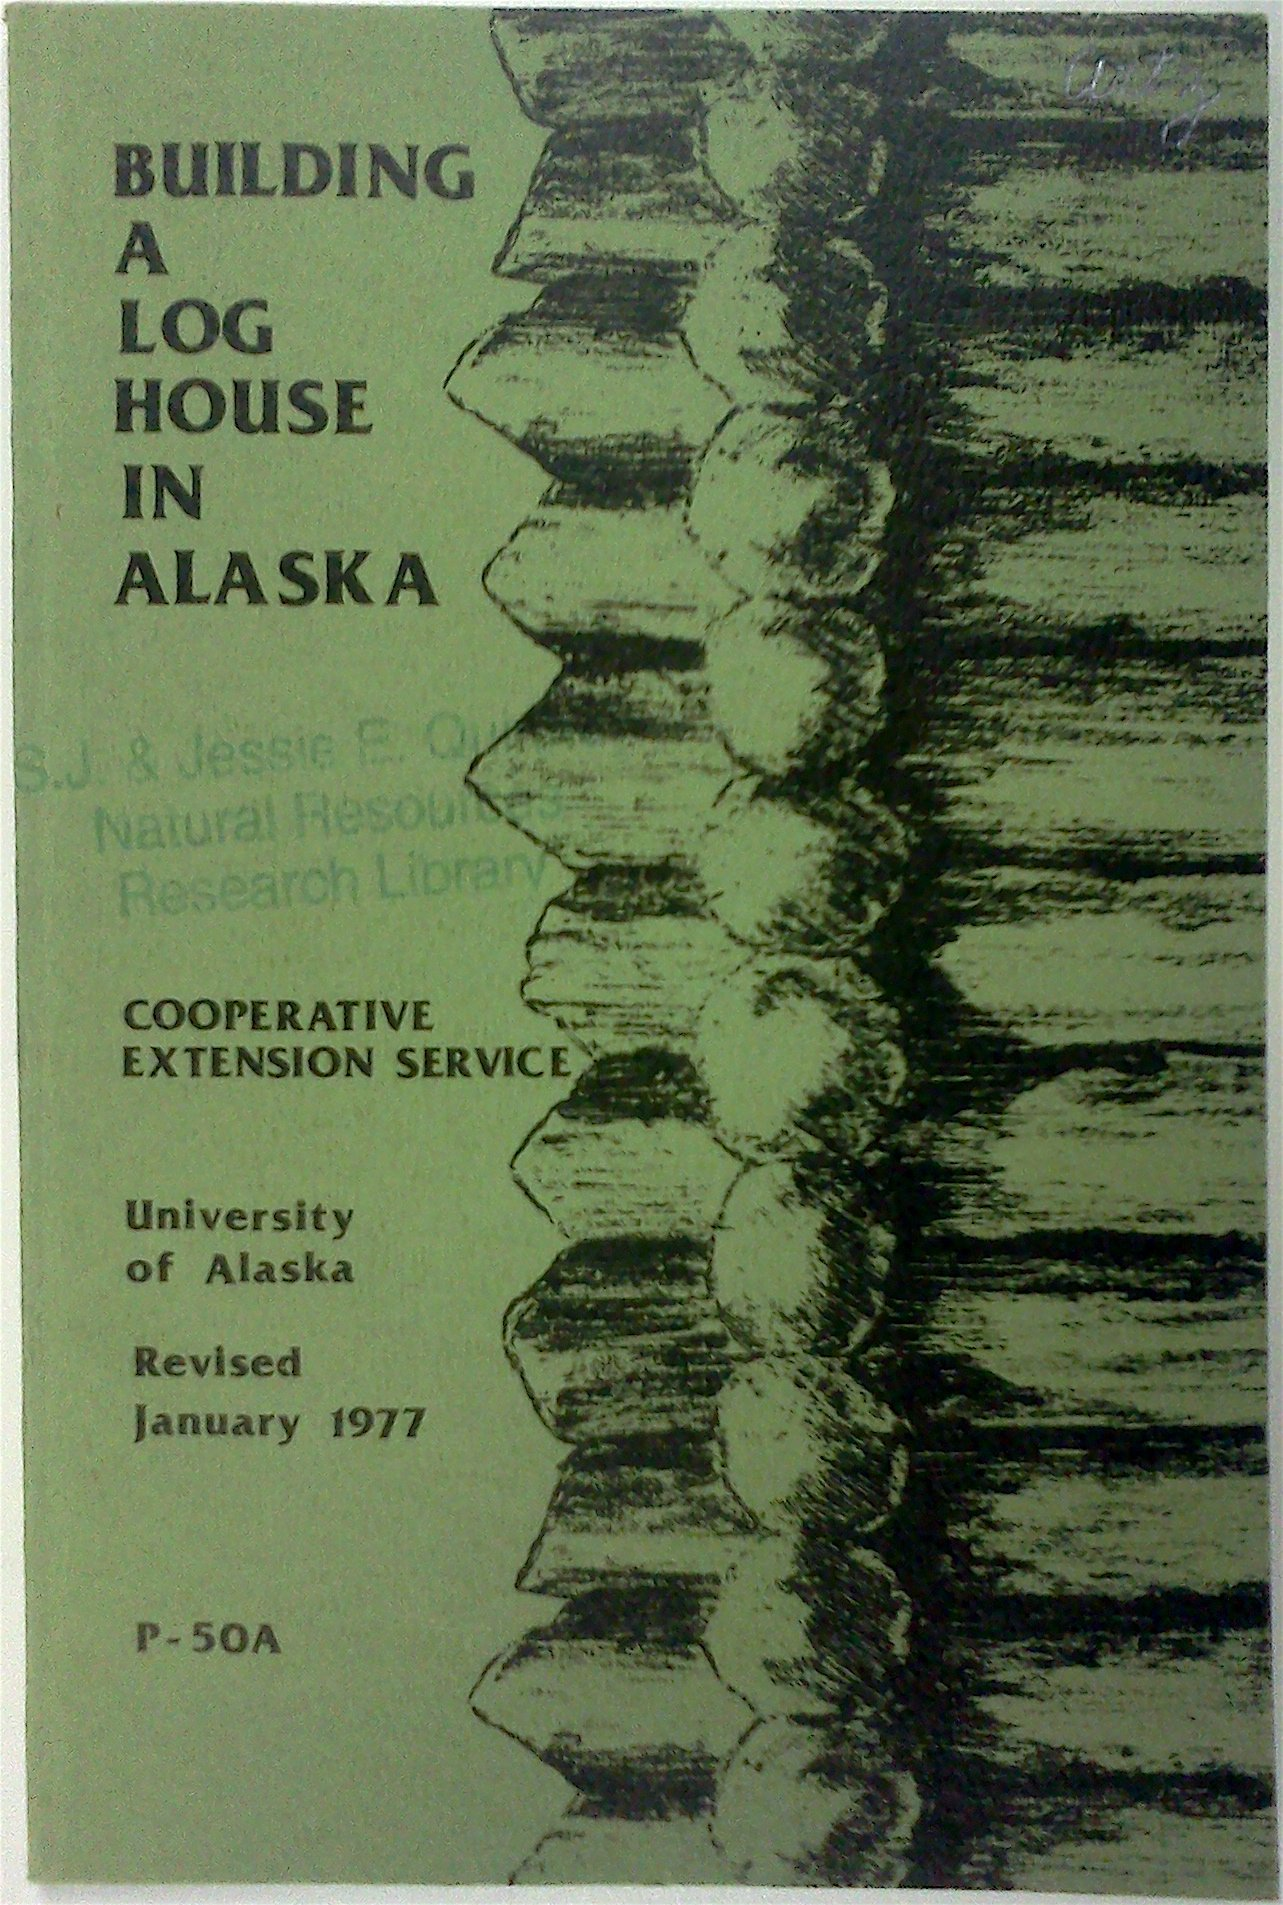 Building a log house in Alaska, Carlson, Axel R